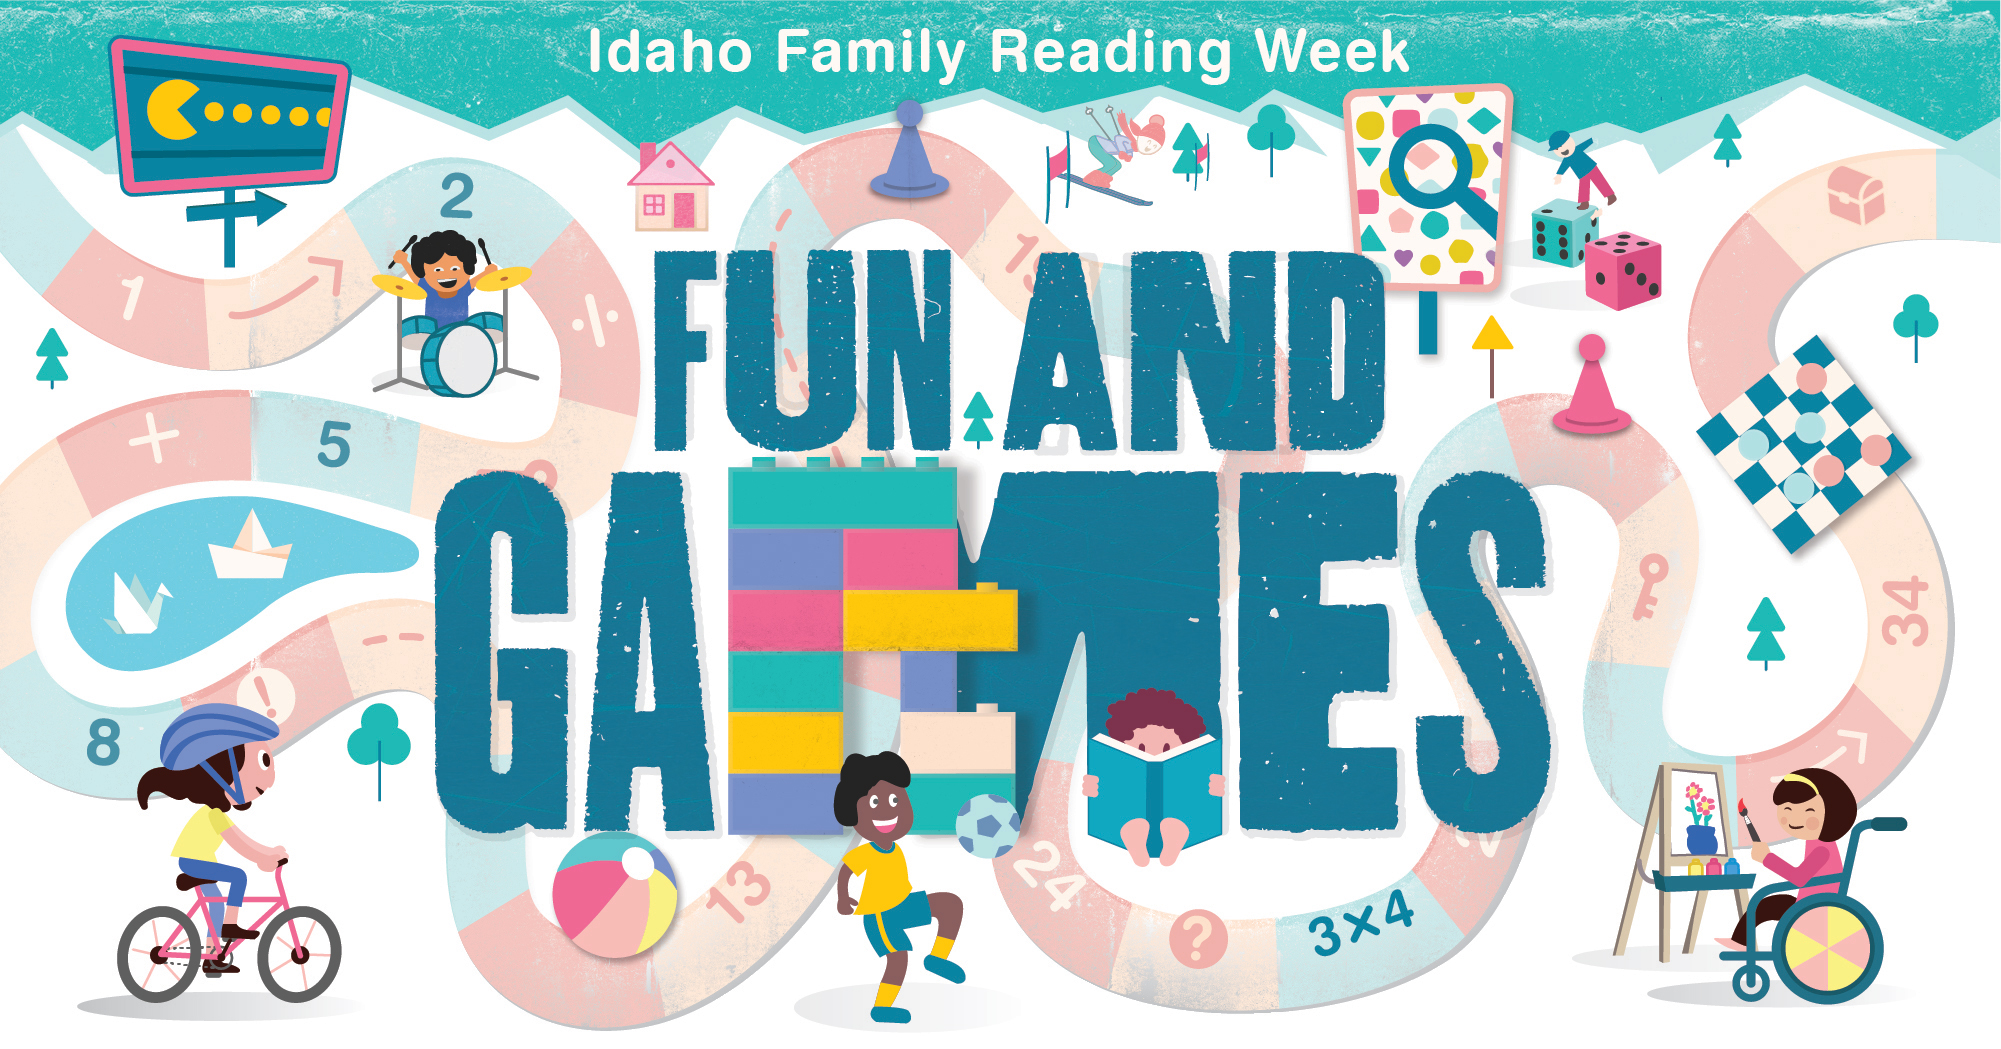 Idaho Family Reading Week logo